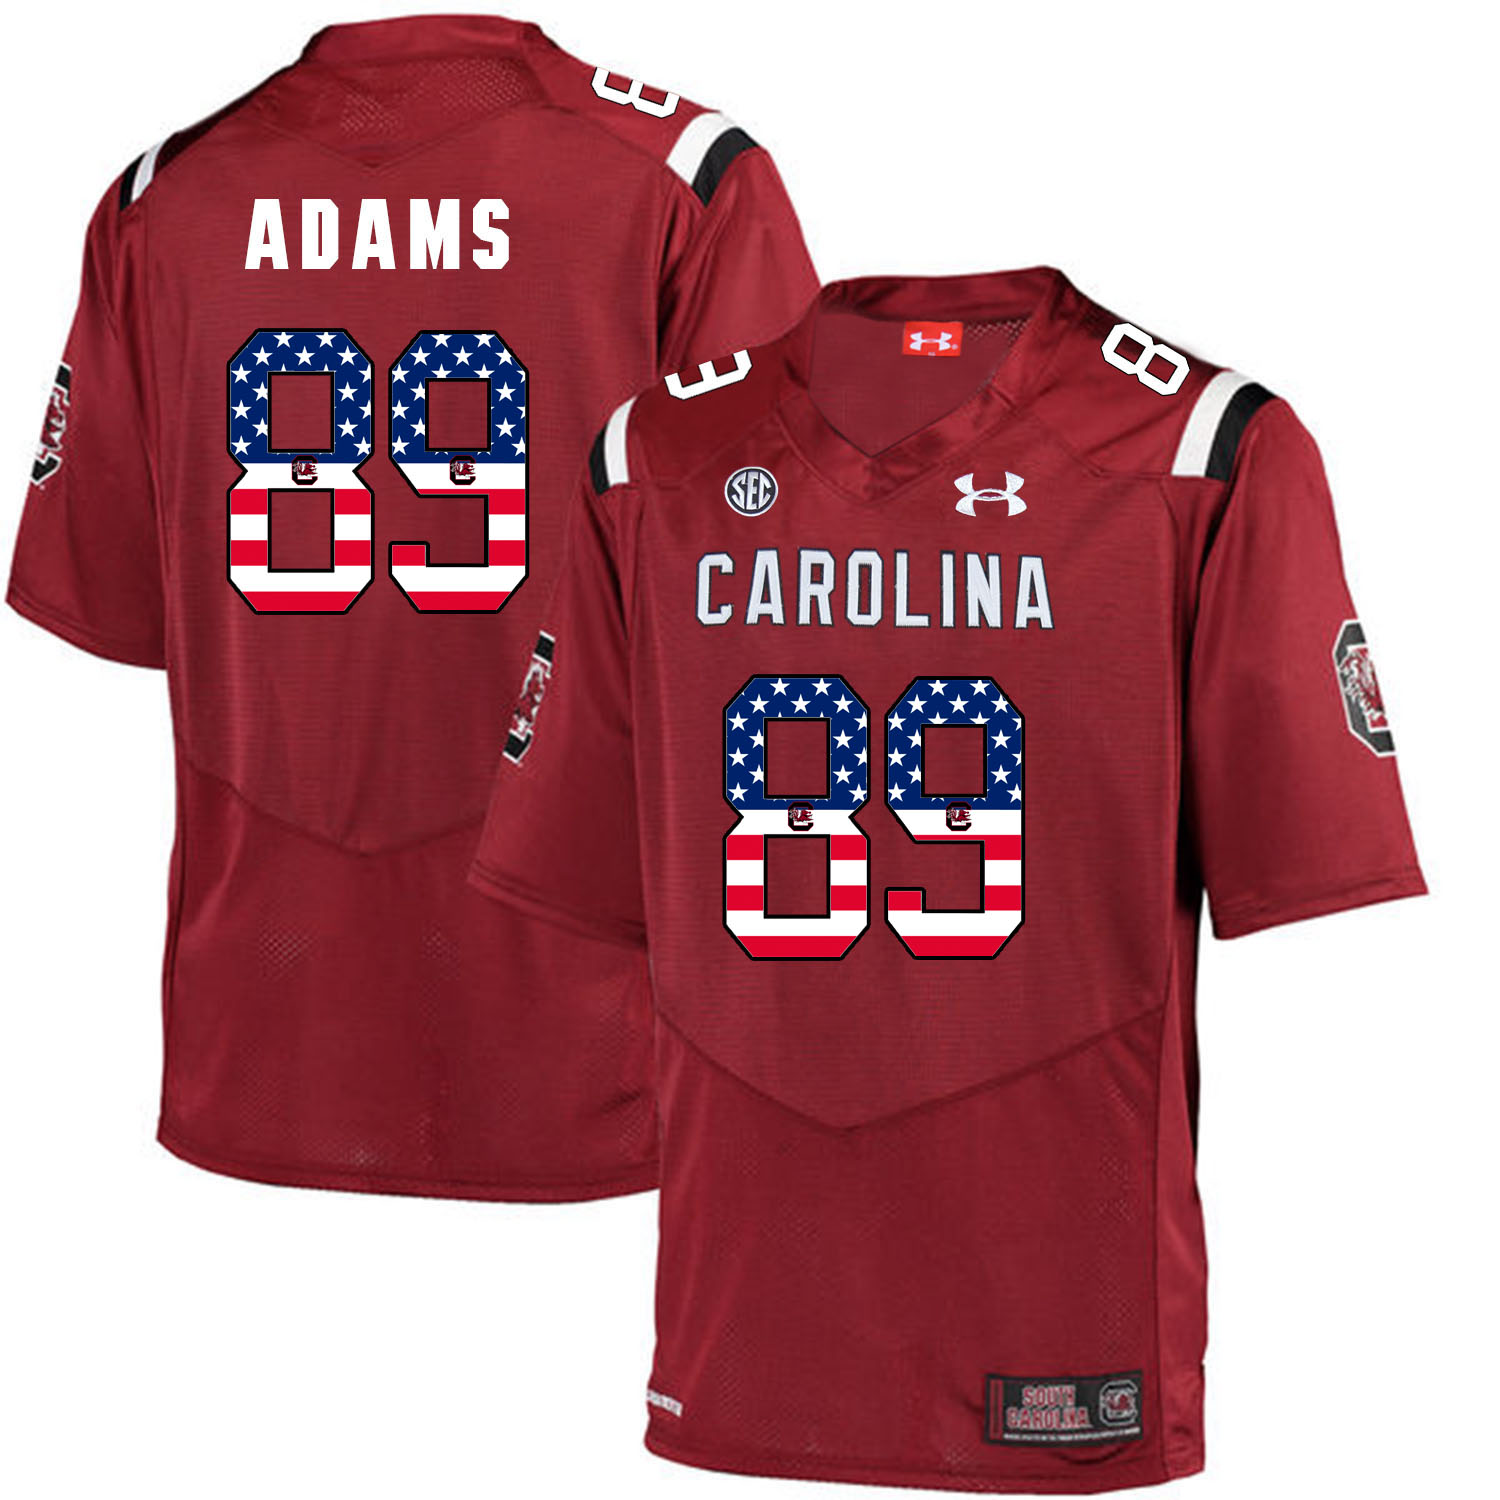 South Carolina Gamecocks 89 Jerell Adams Red USA Flag College Football Jersey